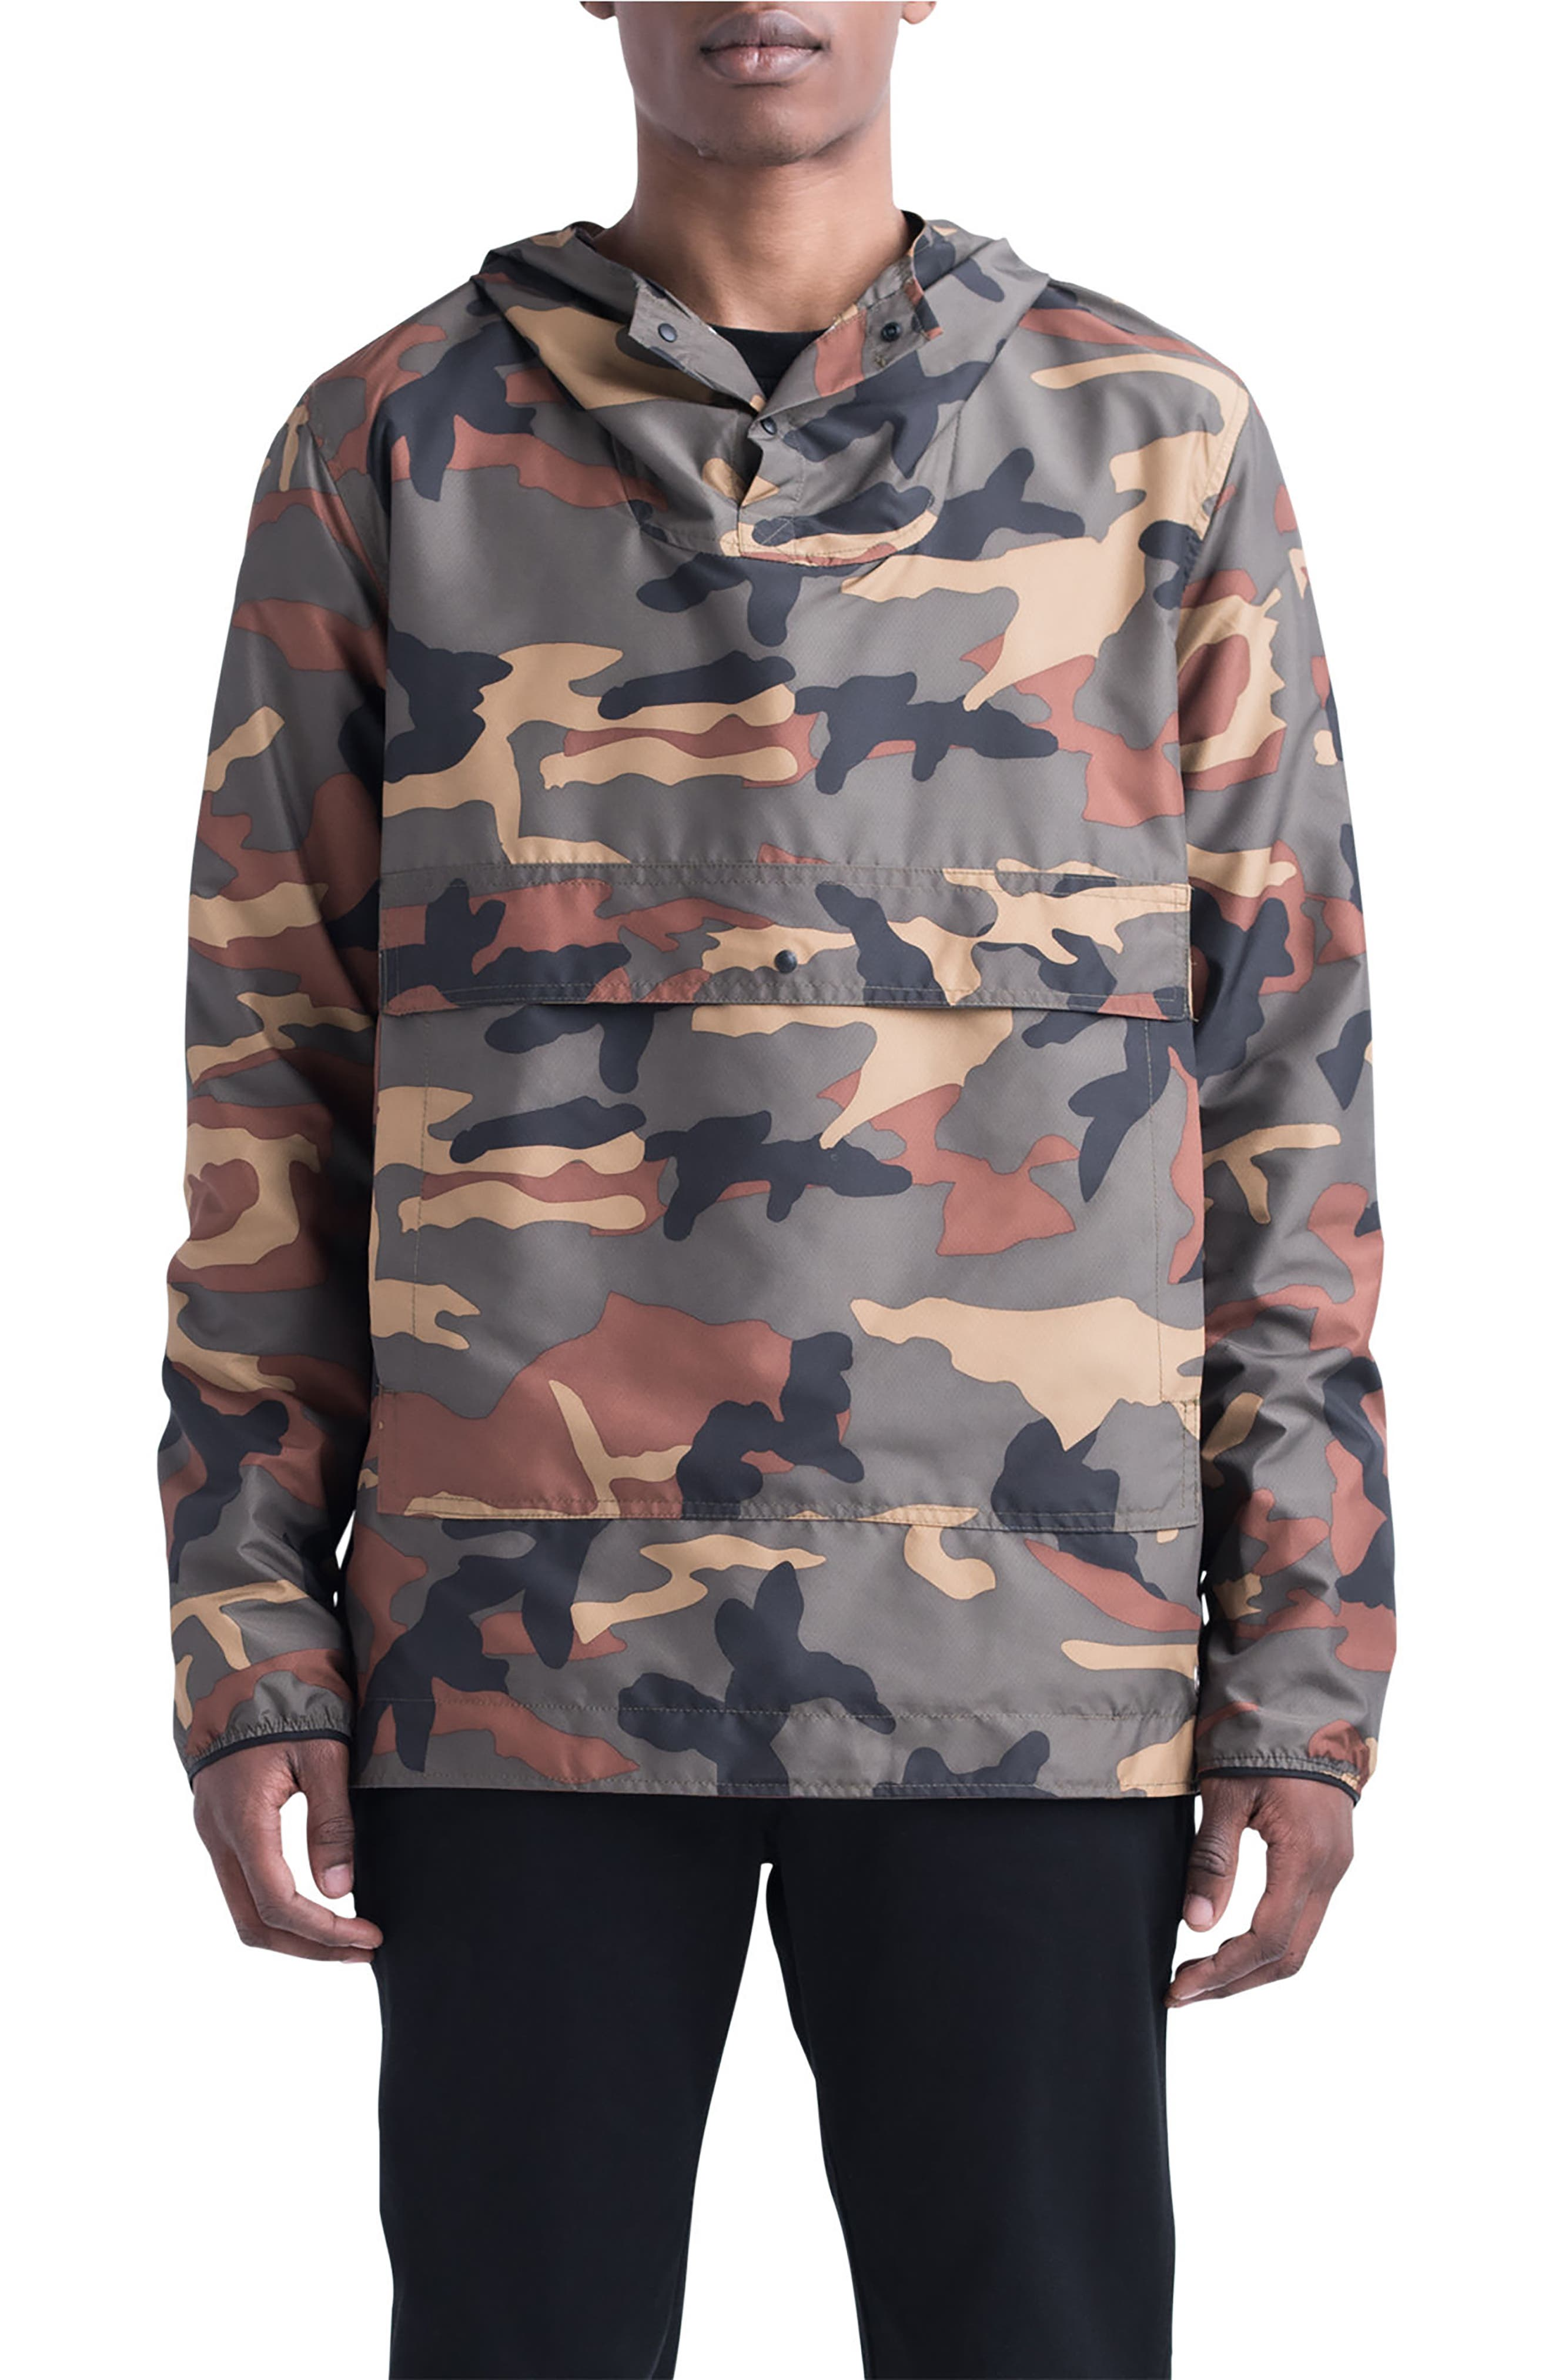 Voyage Anorak,                             Main thumbnail 1, color,                             WOODLAND CAMO